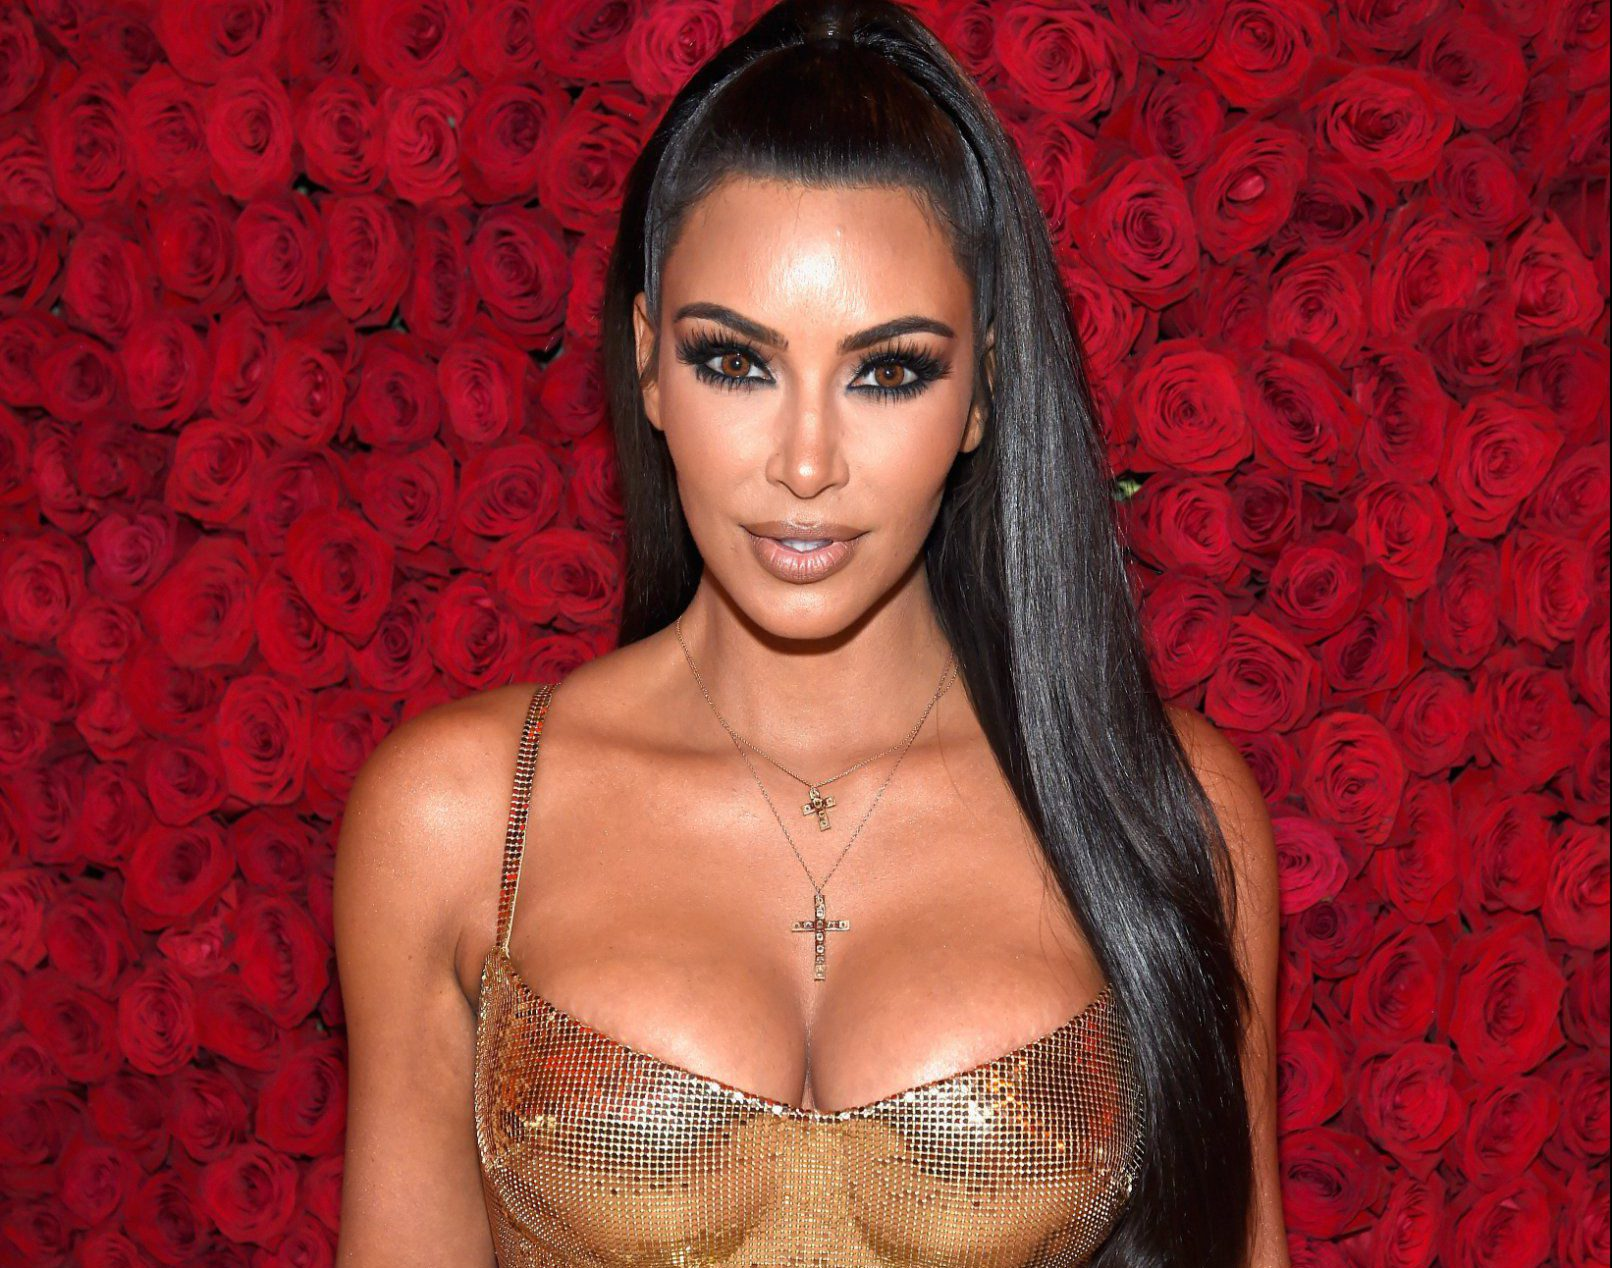 NEW YORK, NY - MAY 07: Kim Kardashian West attends the Heavenly Bodies: Fashion & The Catholic Imagination Costume Institute Gala at The Metropolitan Museum of Art on May 7, 2018 in New York City. (Photo by Kevin Mazur/MG18/Getty Images for The Met Museum/Vogue)